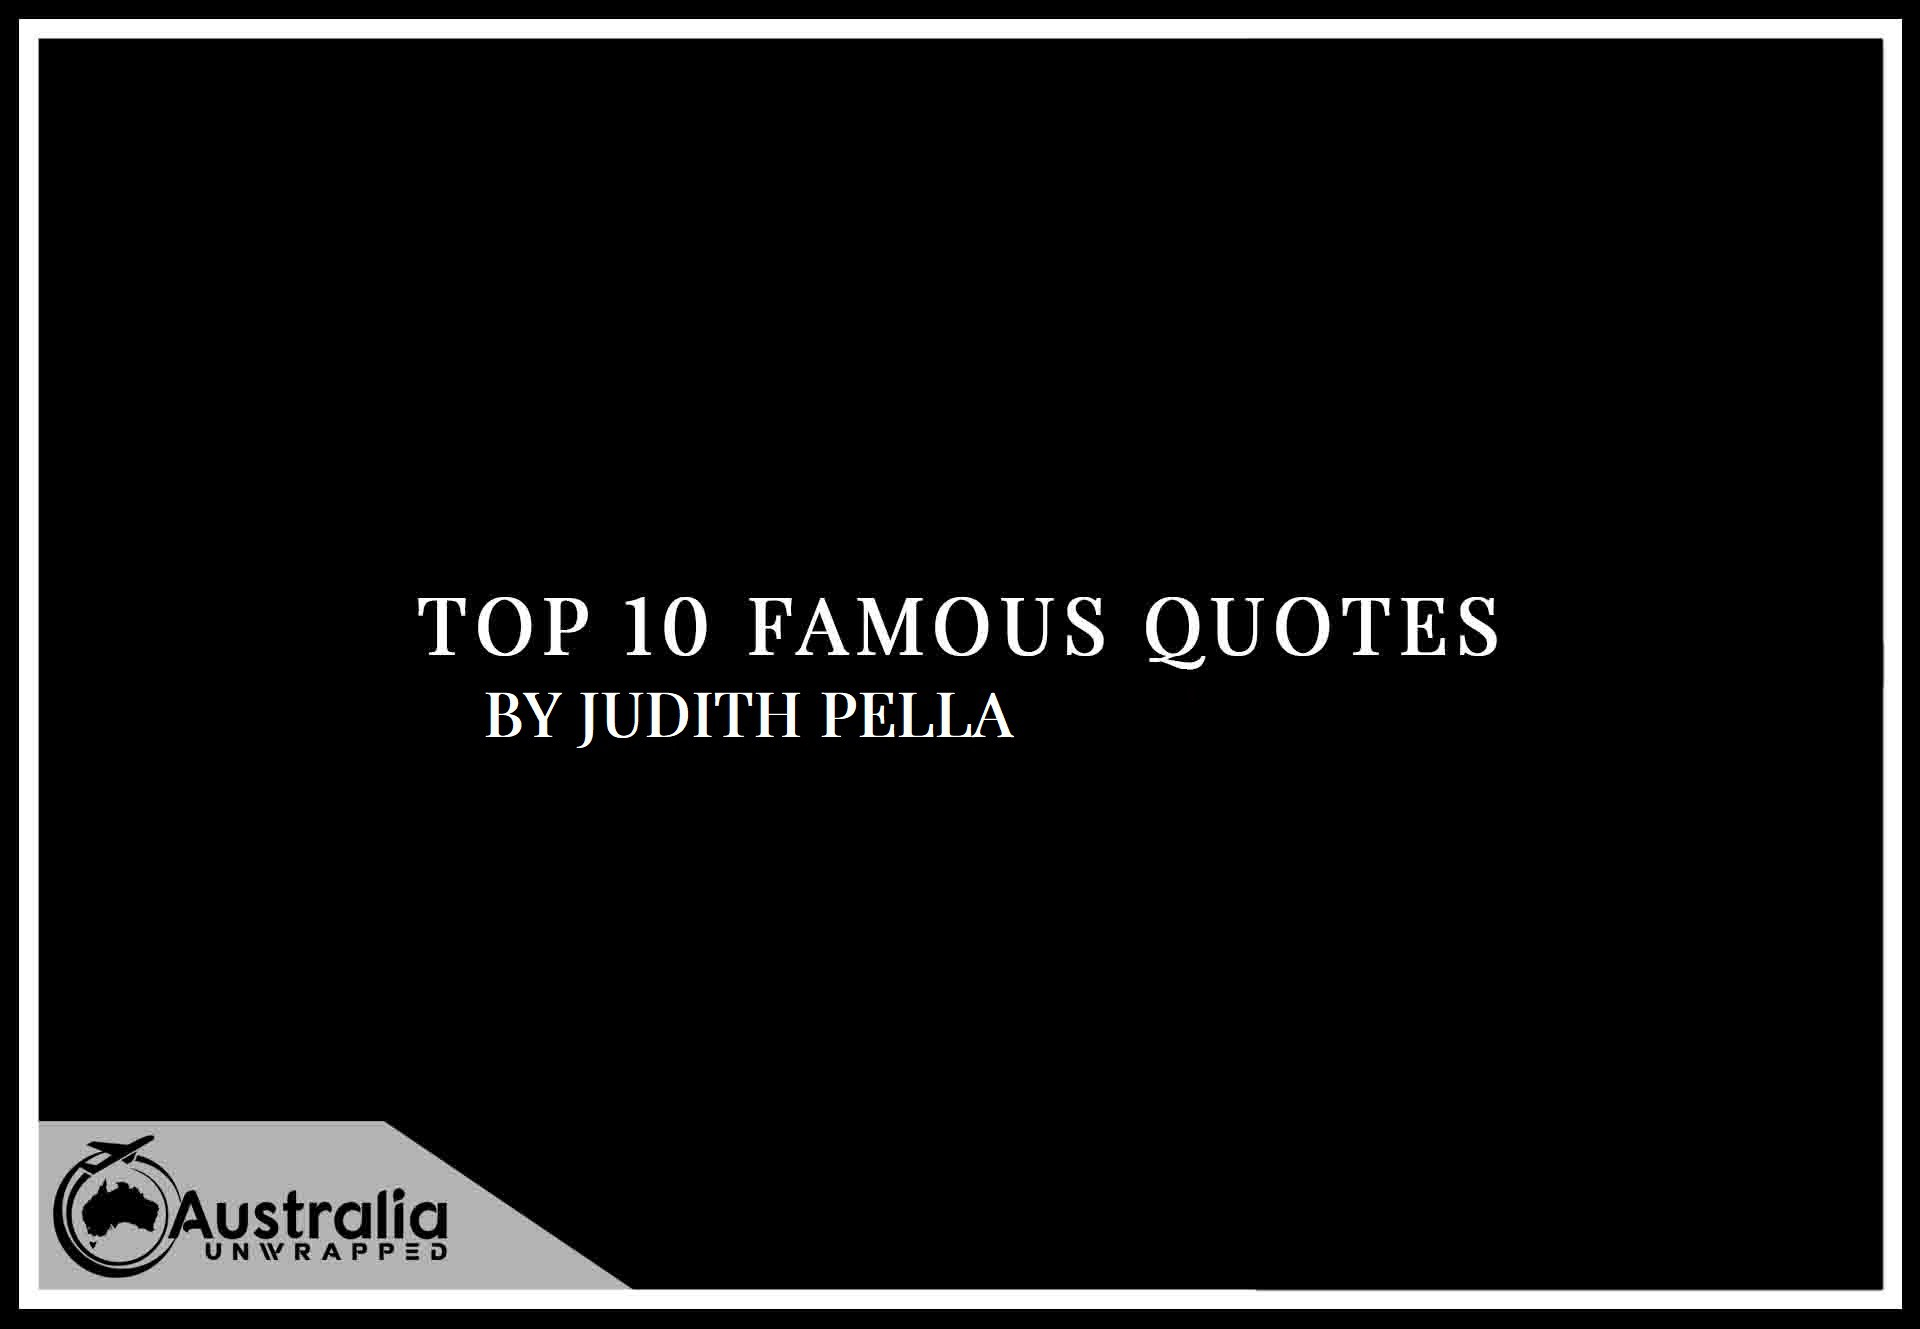 Top 10 Famous Quotes by Author Judith Pella Tracie Peterson